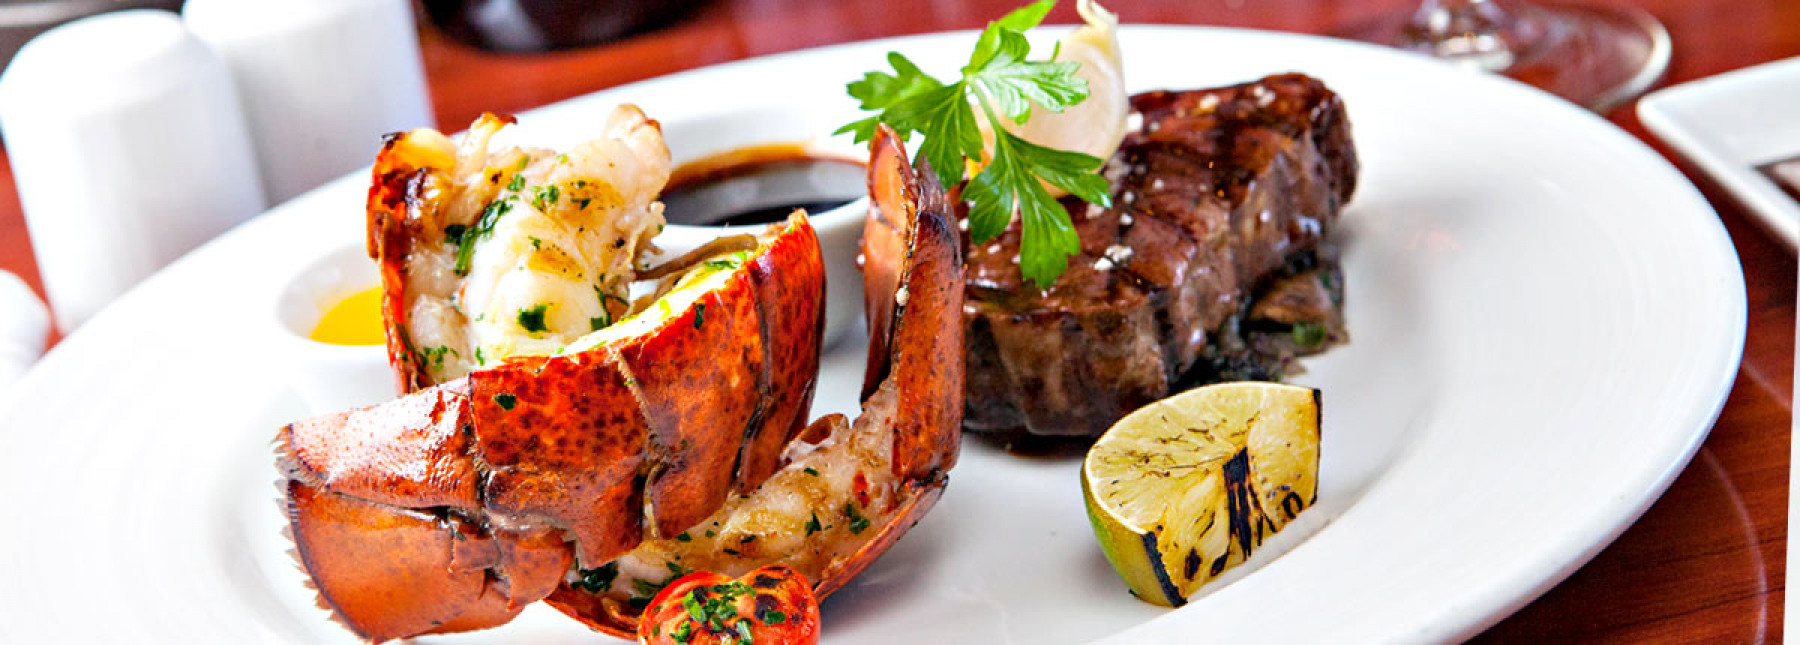 Carnival Cruise Lines Carnival Sunshine Interior Steakhouse.jpg